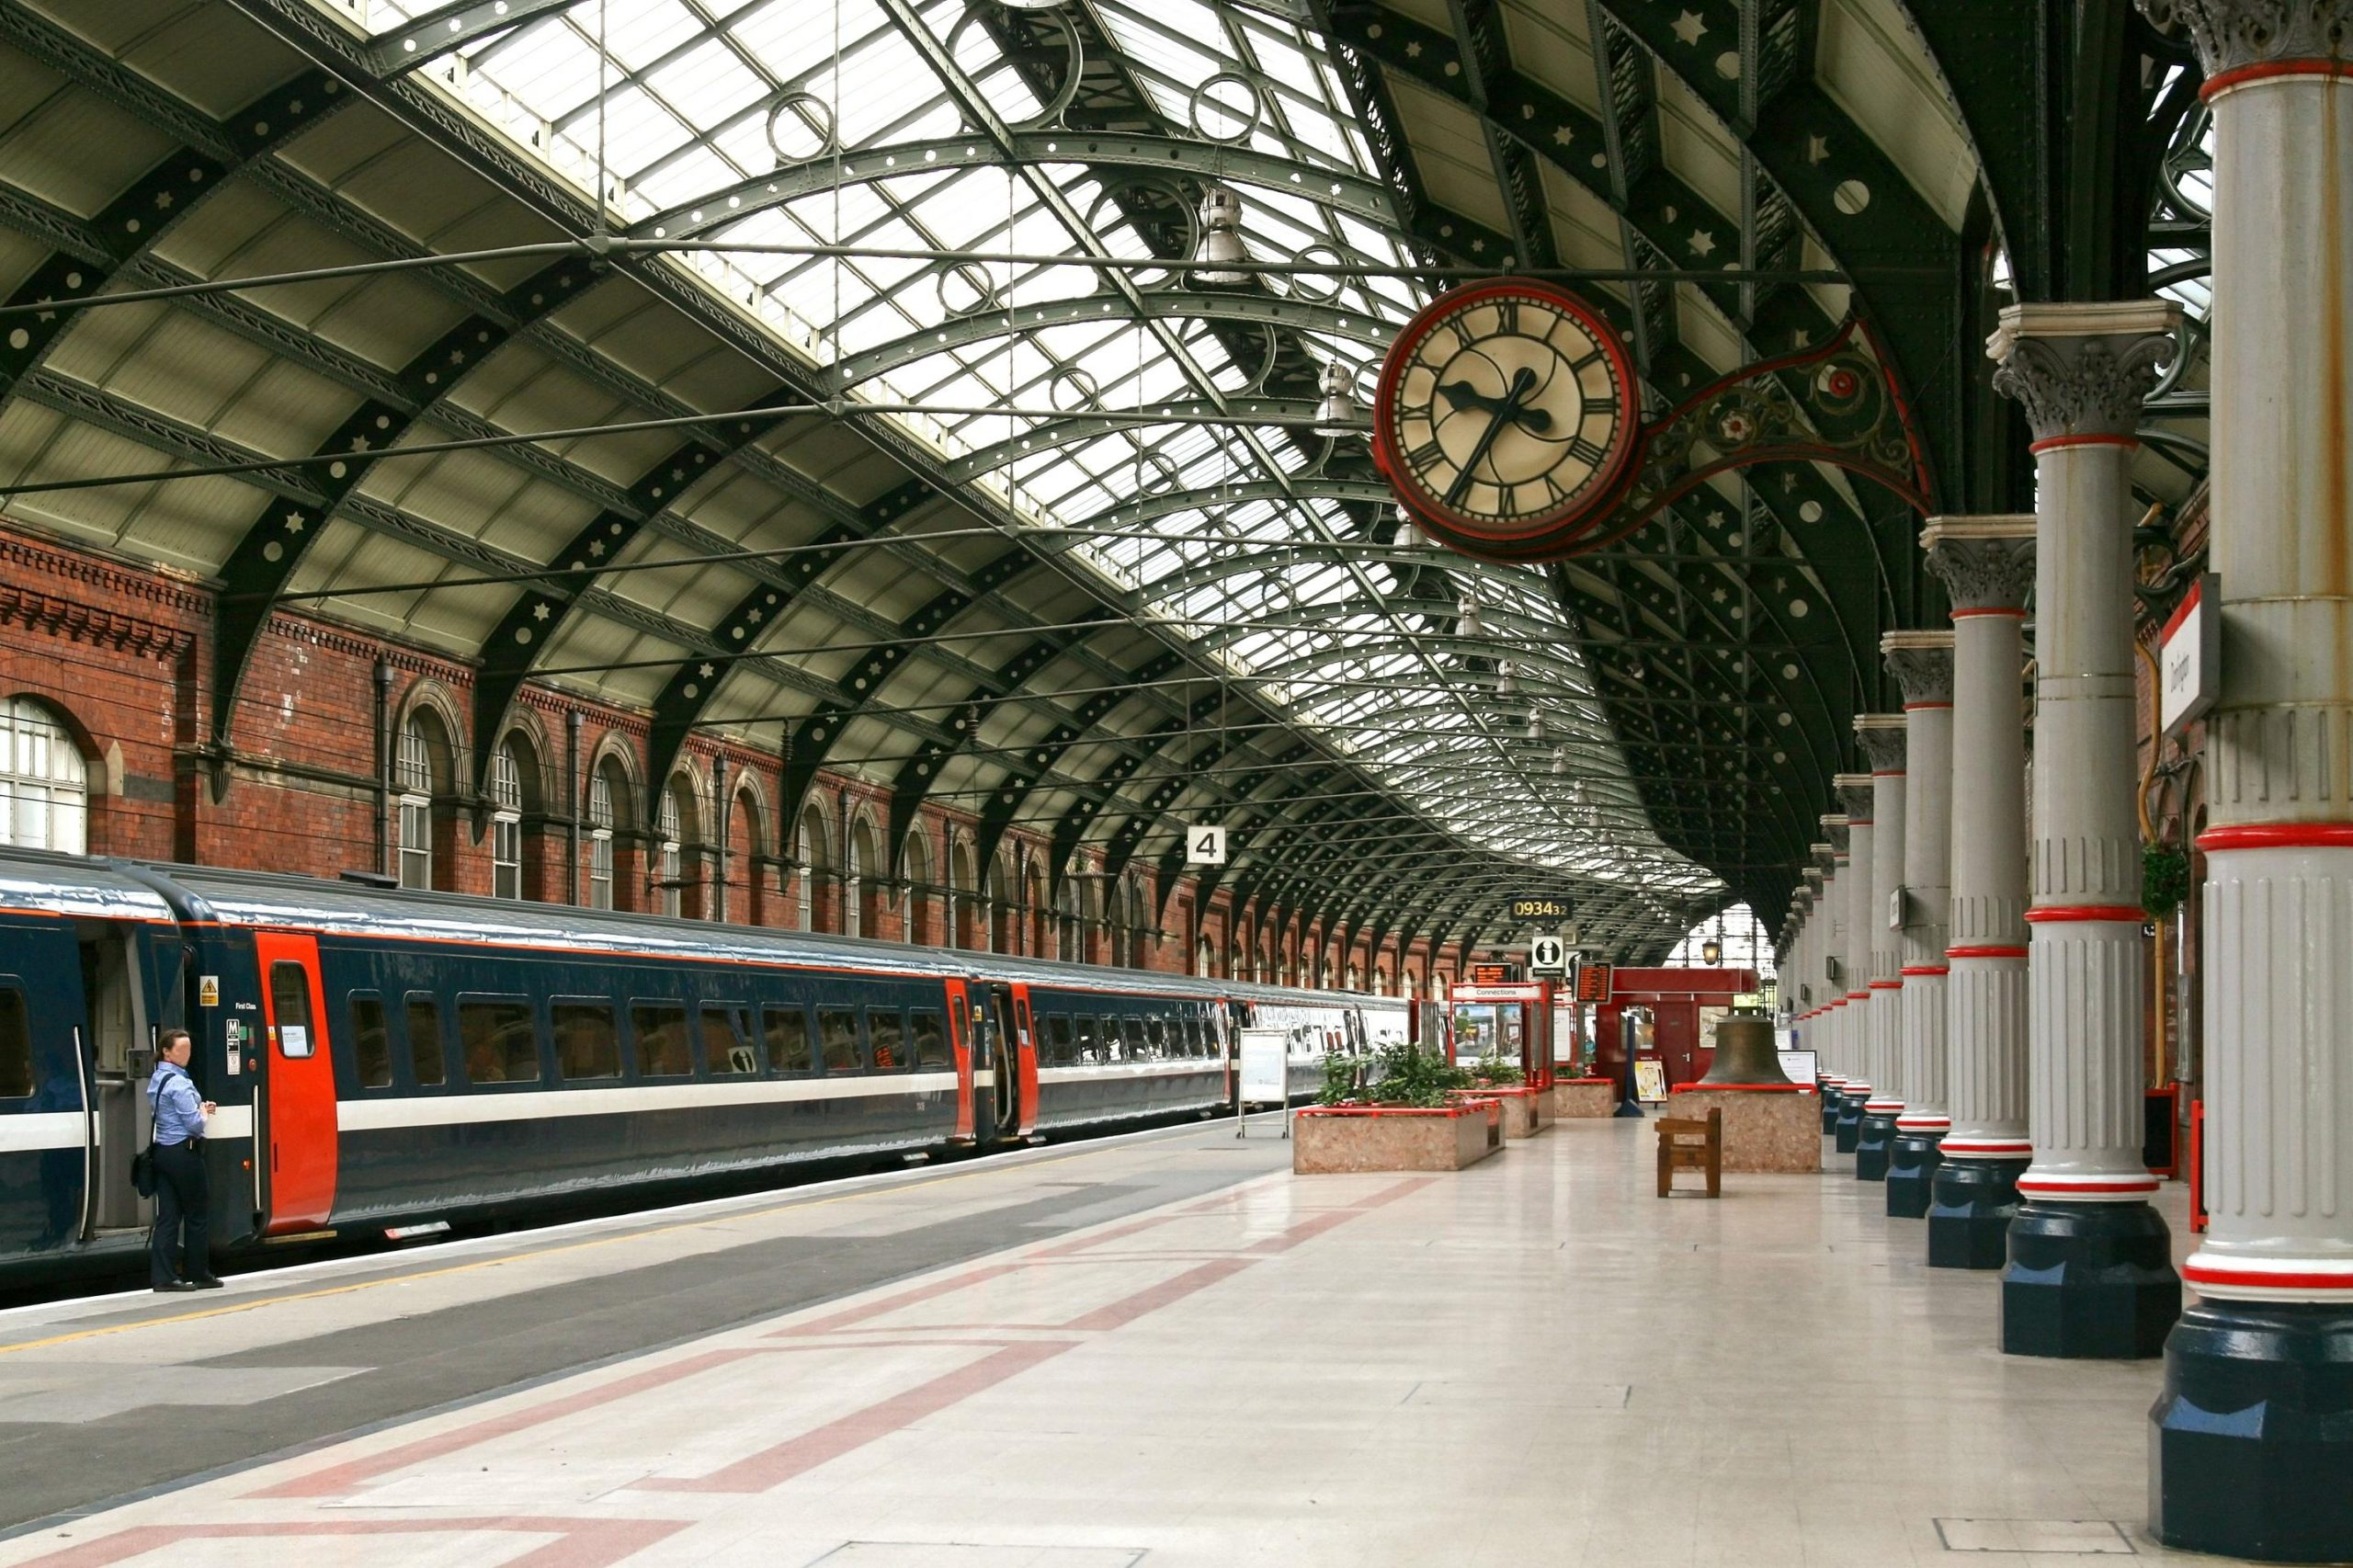 Get tp the station on time with Allied Taxis of Buxton